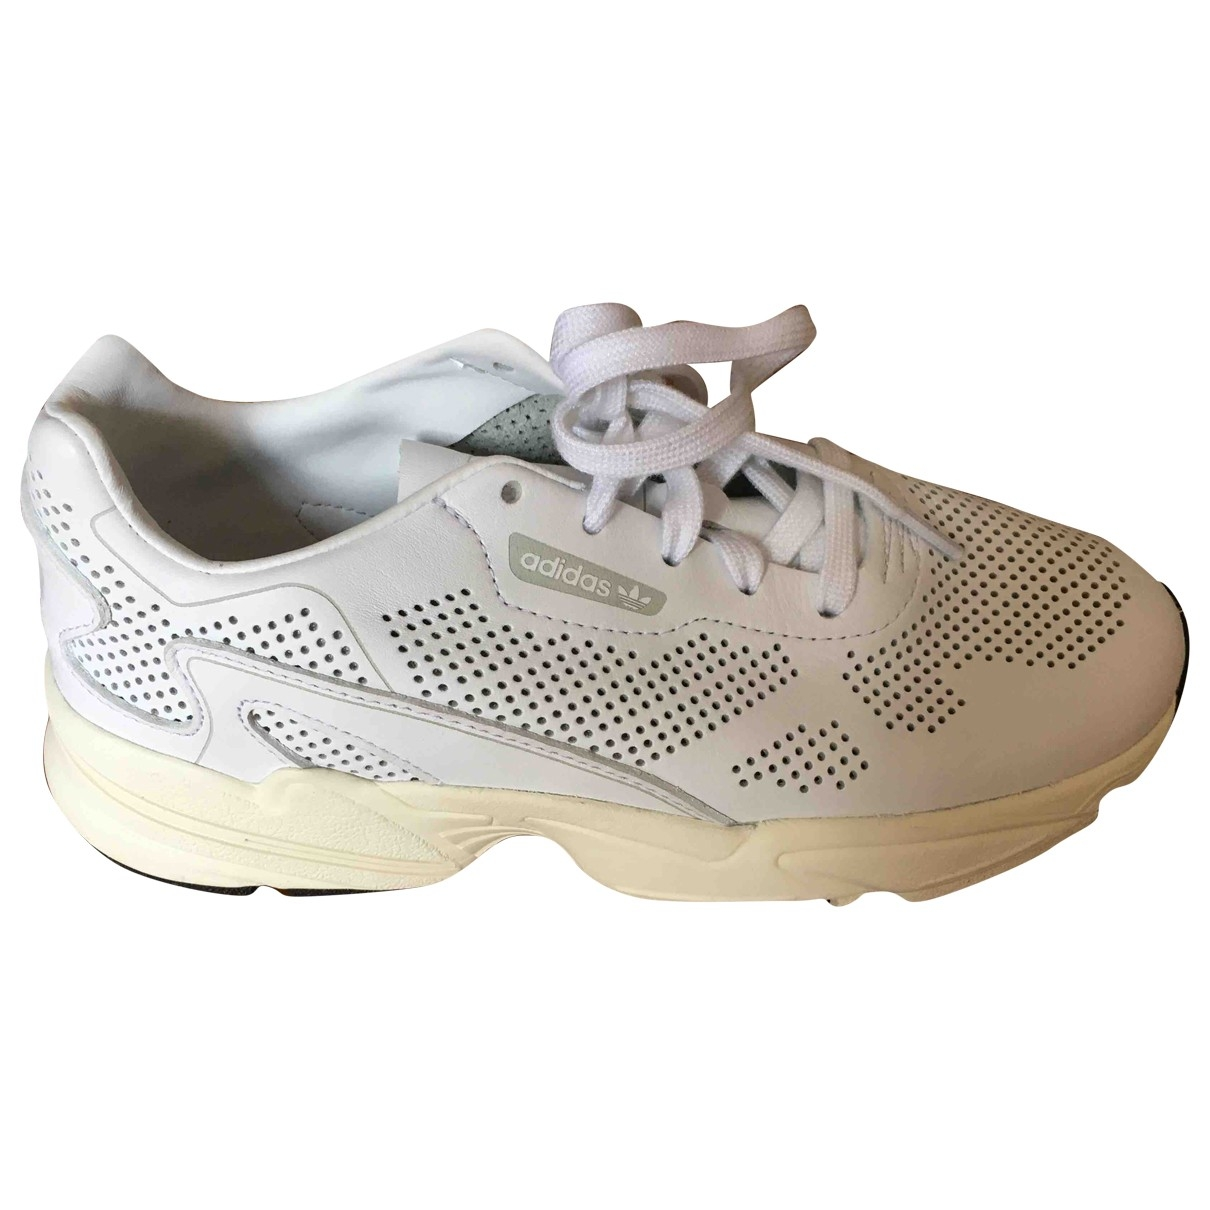 Adidas Falcon White Leather Trainers for Women 8.5 US